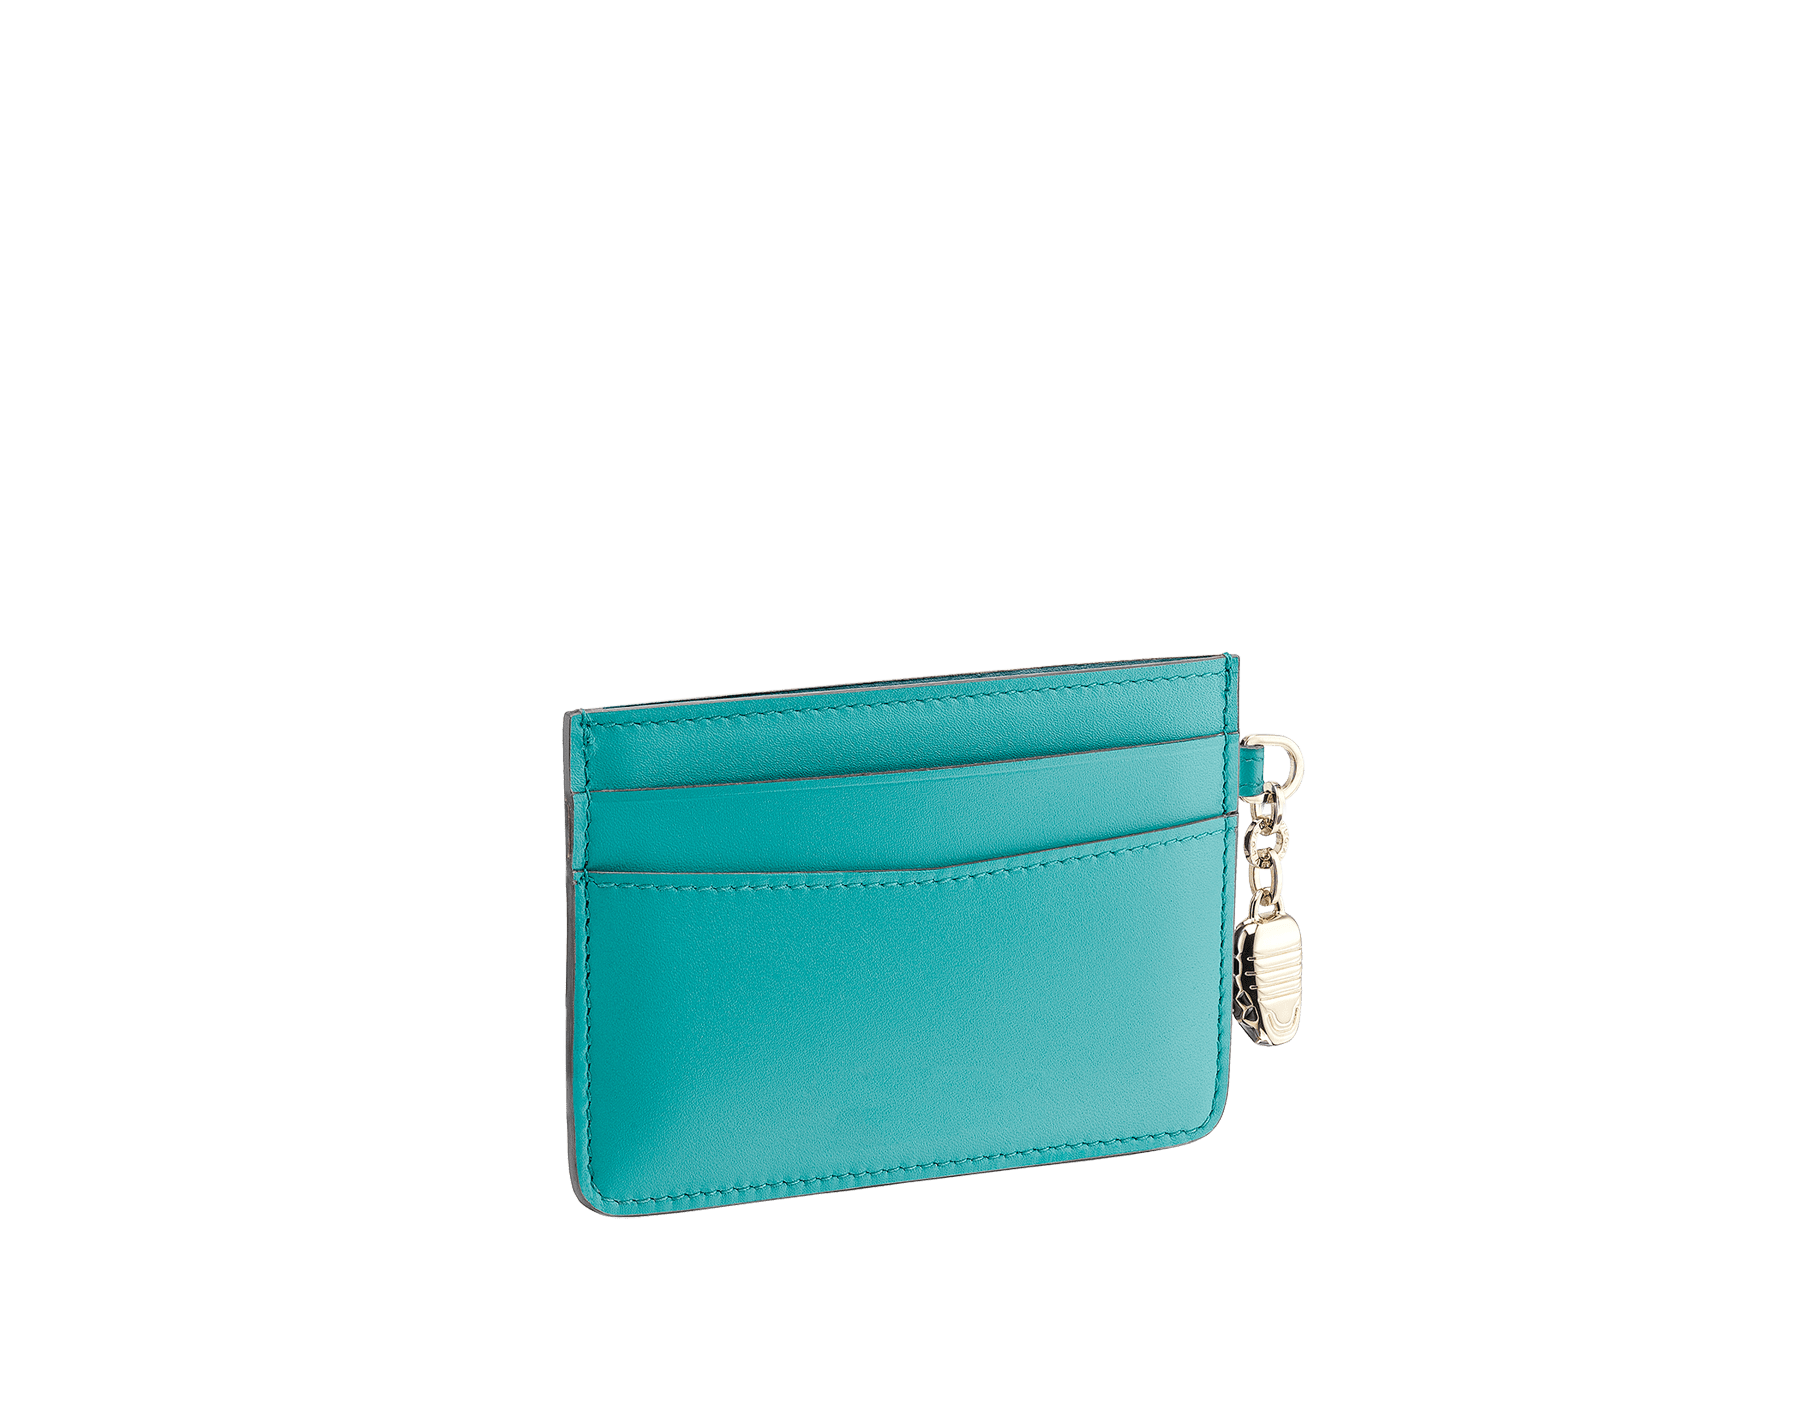 Serpenti Forever credit card holder in arctic jade calf leather. Iconic snakehead charm in black and white enamel, with green malachite enamel eyes. 288816 image 2